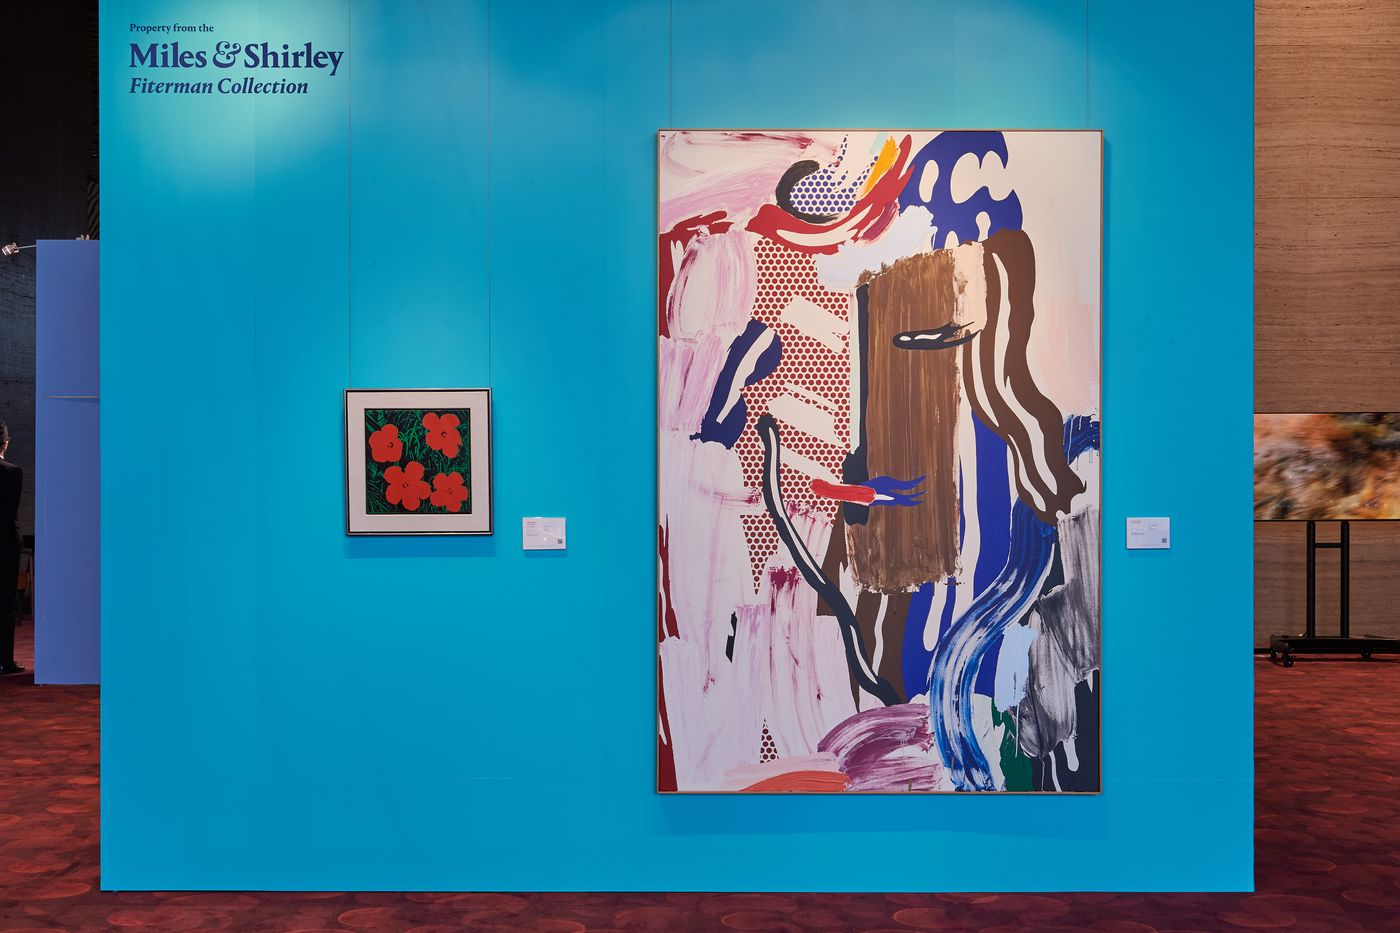 Offered across our salerooms in New York, London and Hong Kong in 2019, the Miles & Shirley Fiterman Collection presents a seminal and pioneering selection of 20th Century and Pop Art.  We turn our attention to five works—by Warhol, Lichtenstein, Calder and Botero—going under the hammer in Asia.